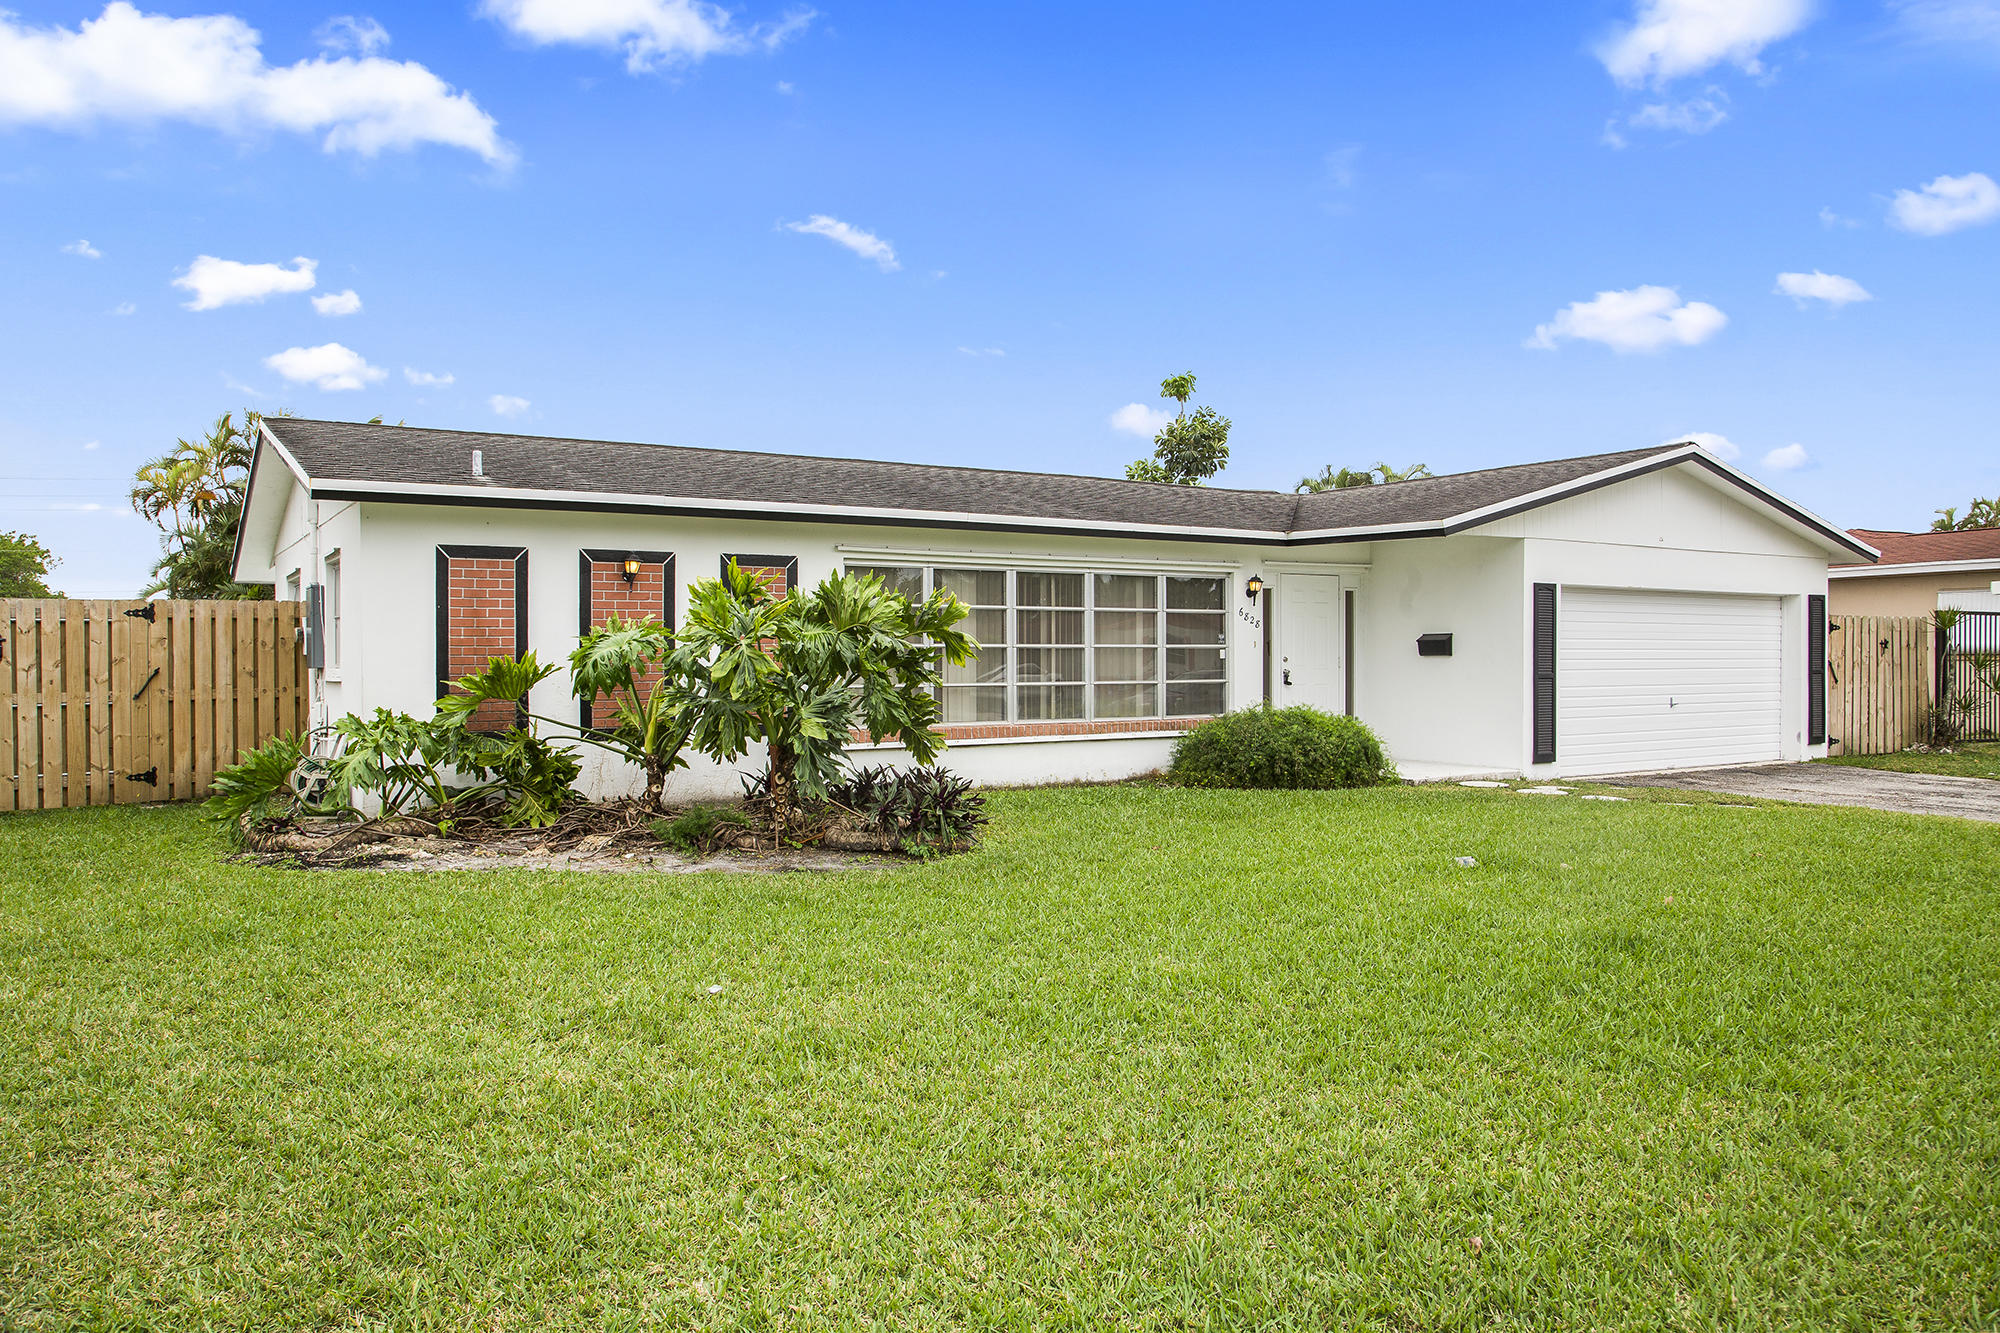 Home for sale in North Lauderdale Division North Lauderdale Florida